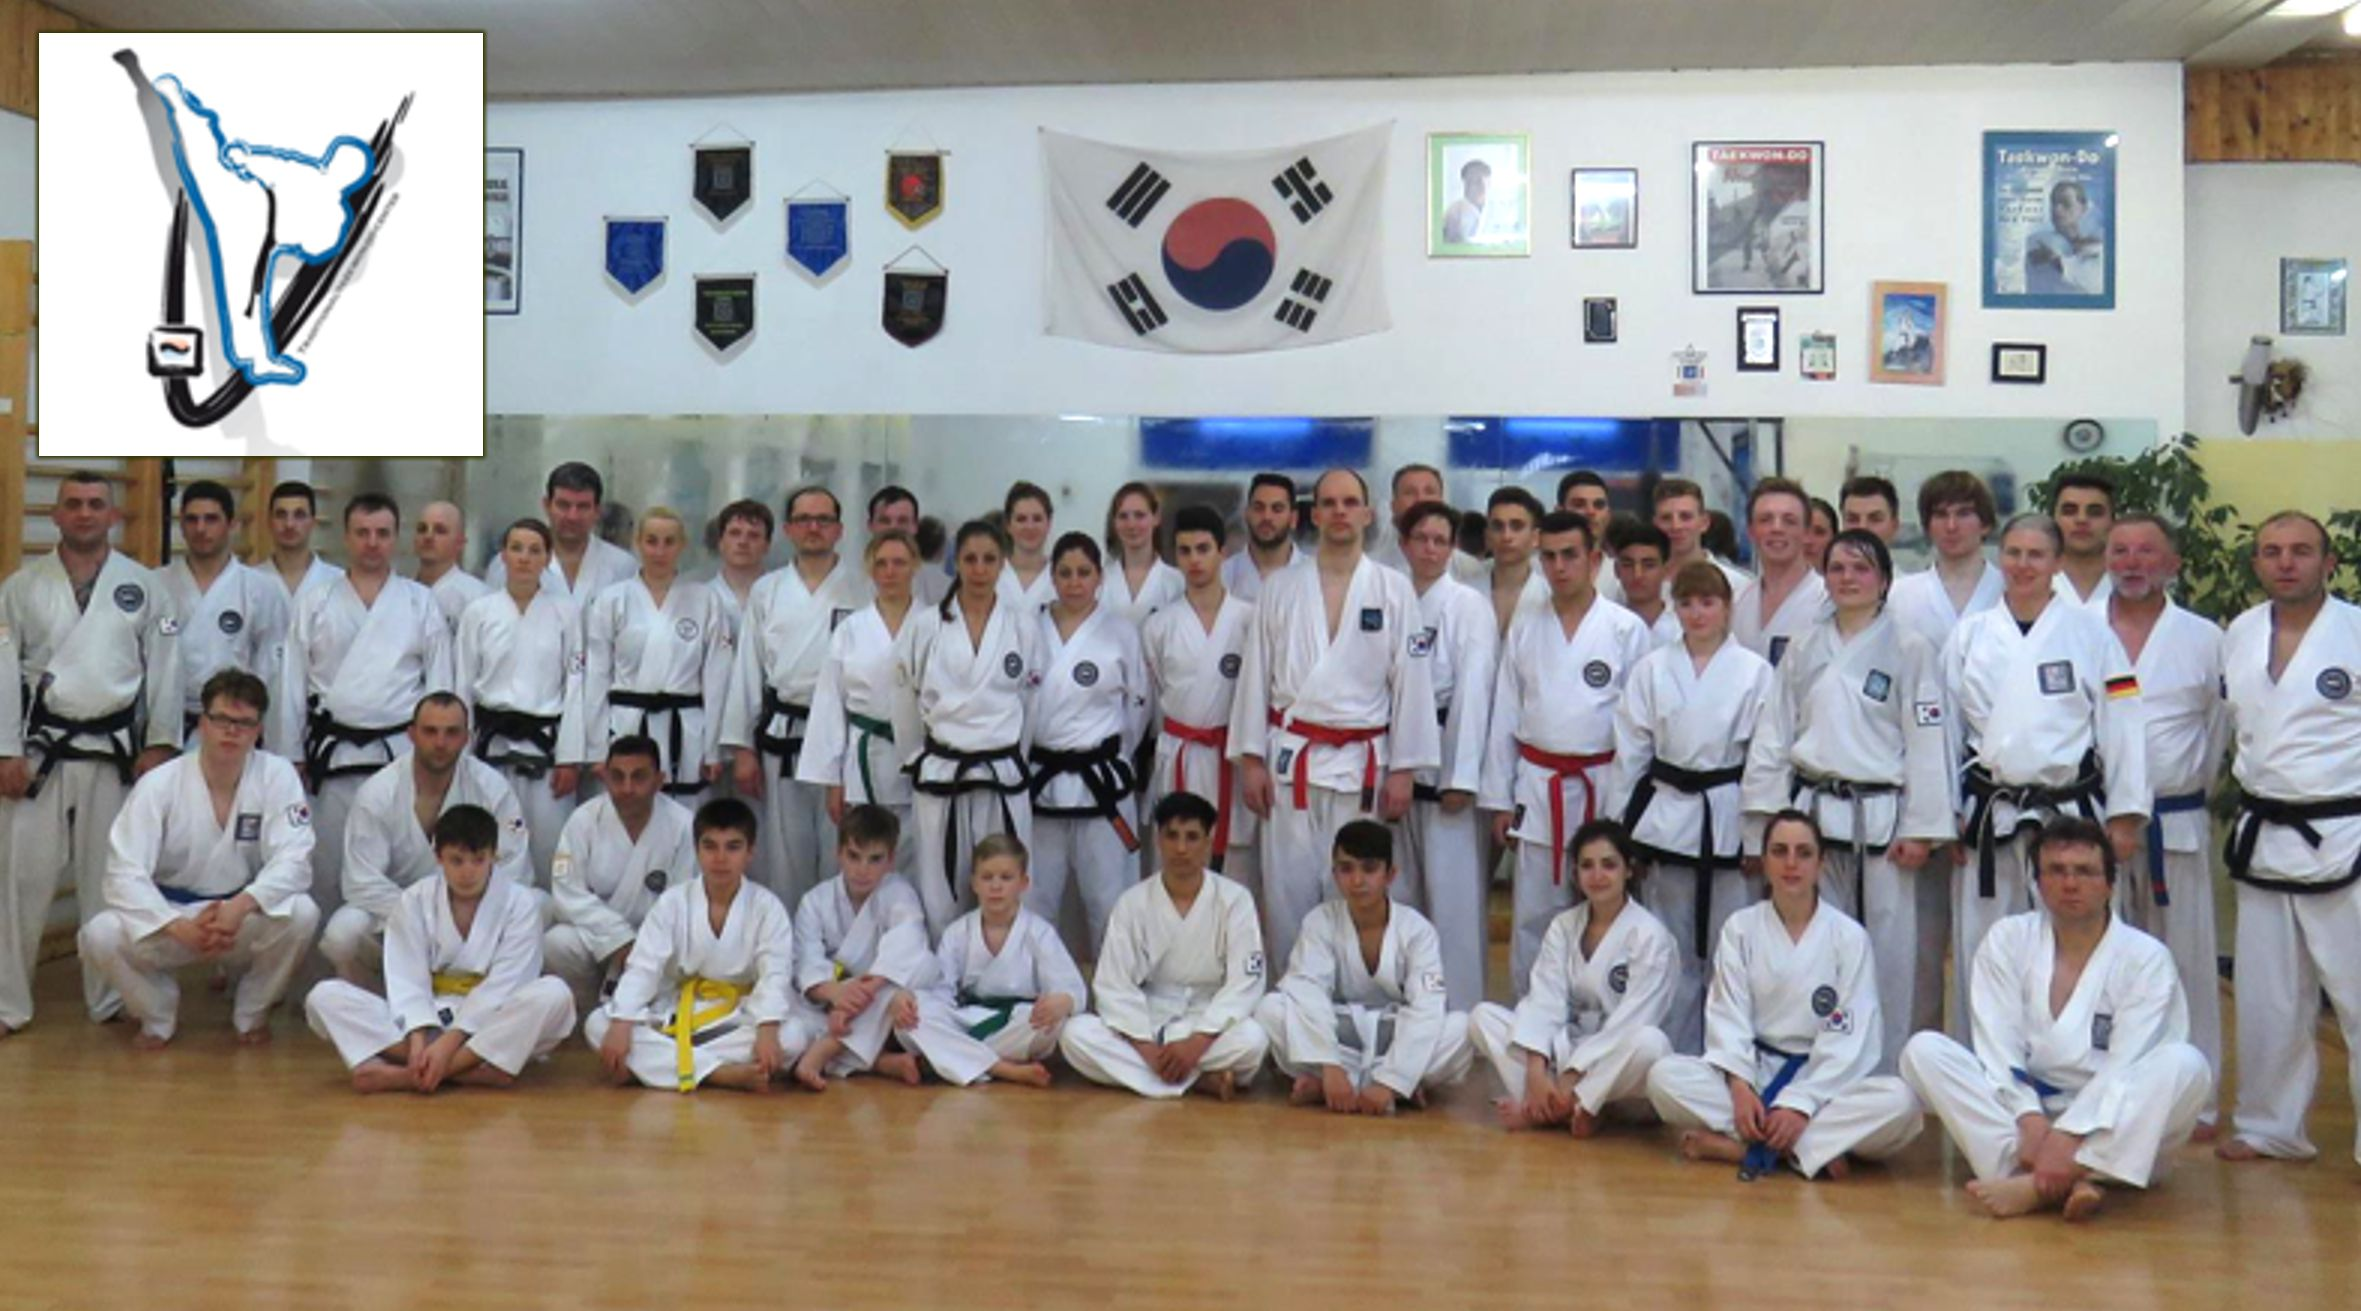 Taekwon-Do Center Pirna